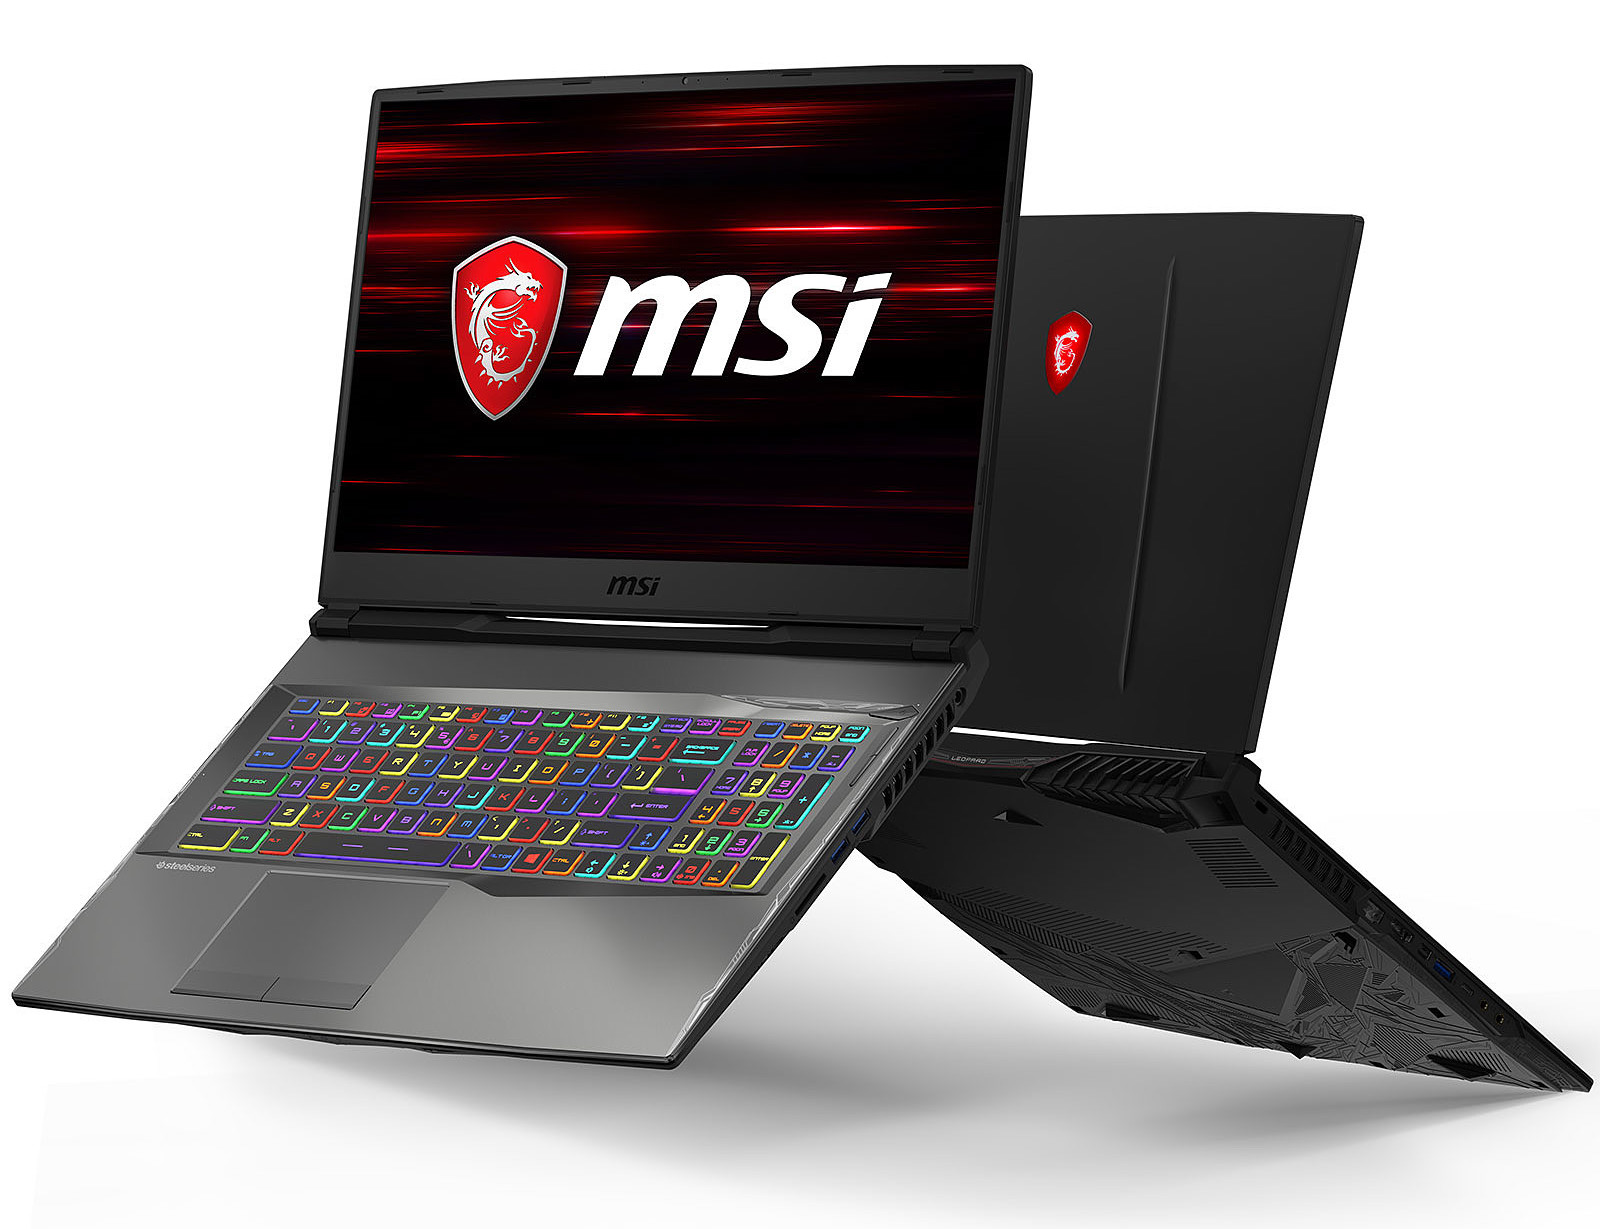 Best MSI Laptops To Buy For Gaming